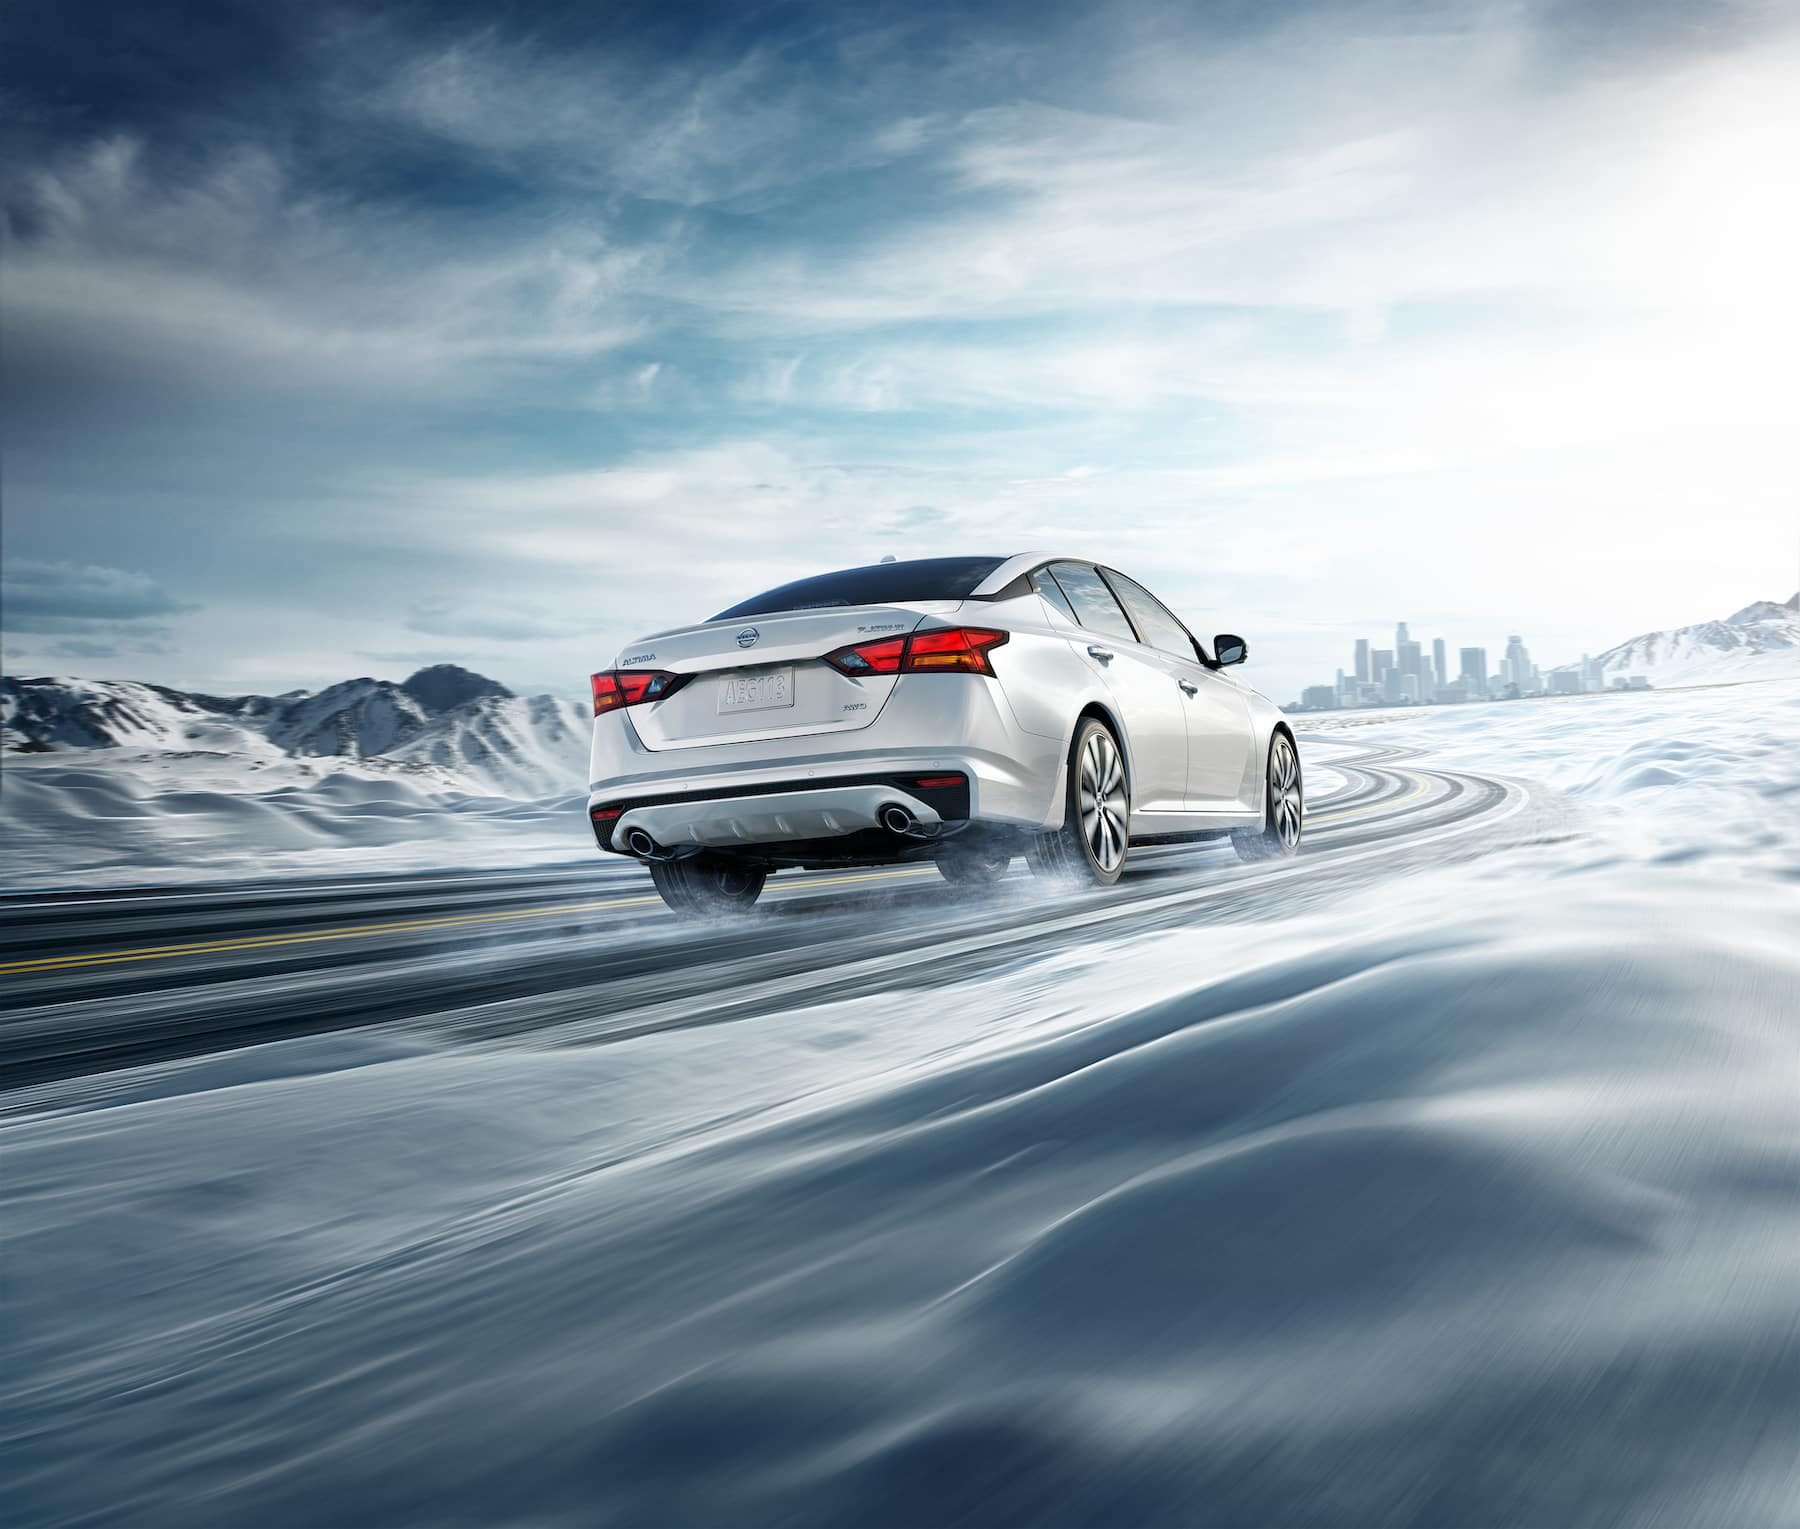 Model Features of the 2020 Nissan Altima at Boch Nissan of Norwood | white nissan altima driving in the snow